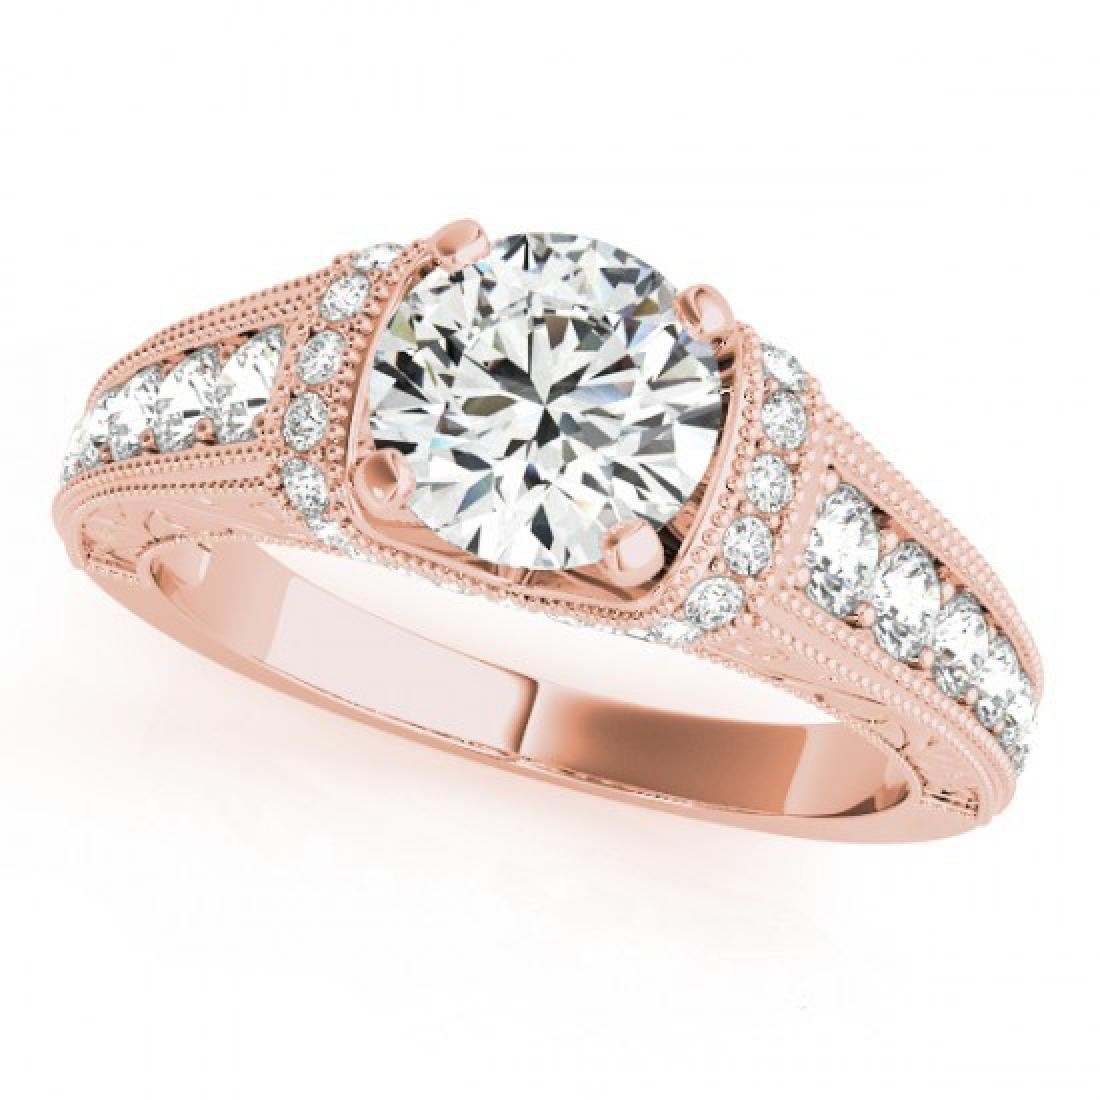 1.75 CTW Certified VS/SI Diamond Solitaire Antique Ring